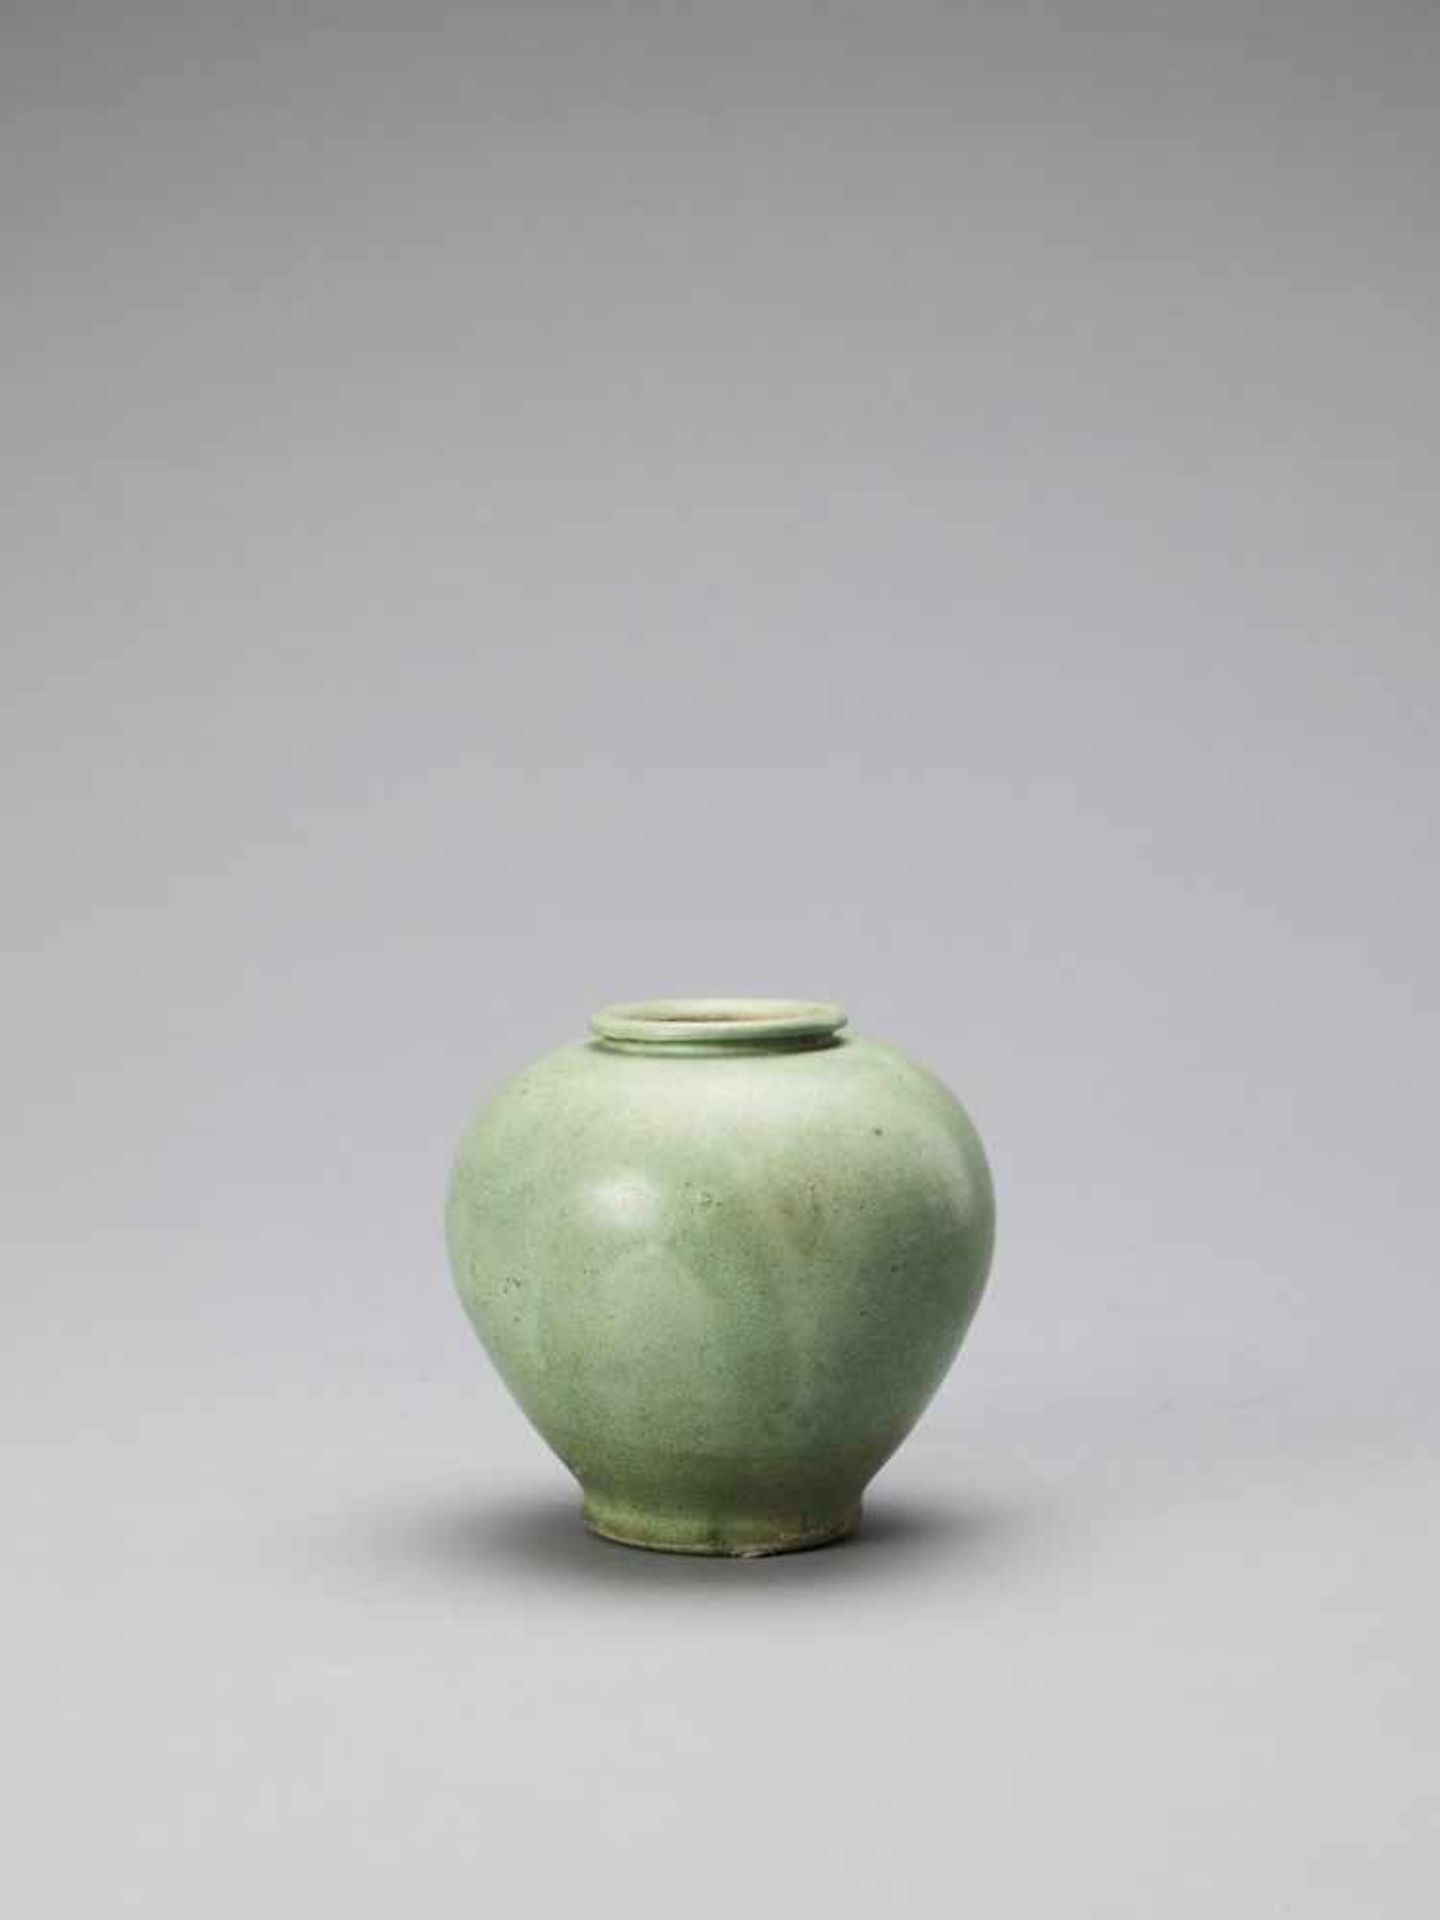 Los 400 - A LIME GREEN-GLAZED POTTERY JAR, TANG